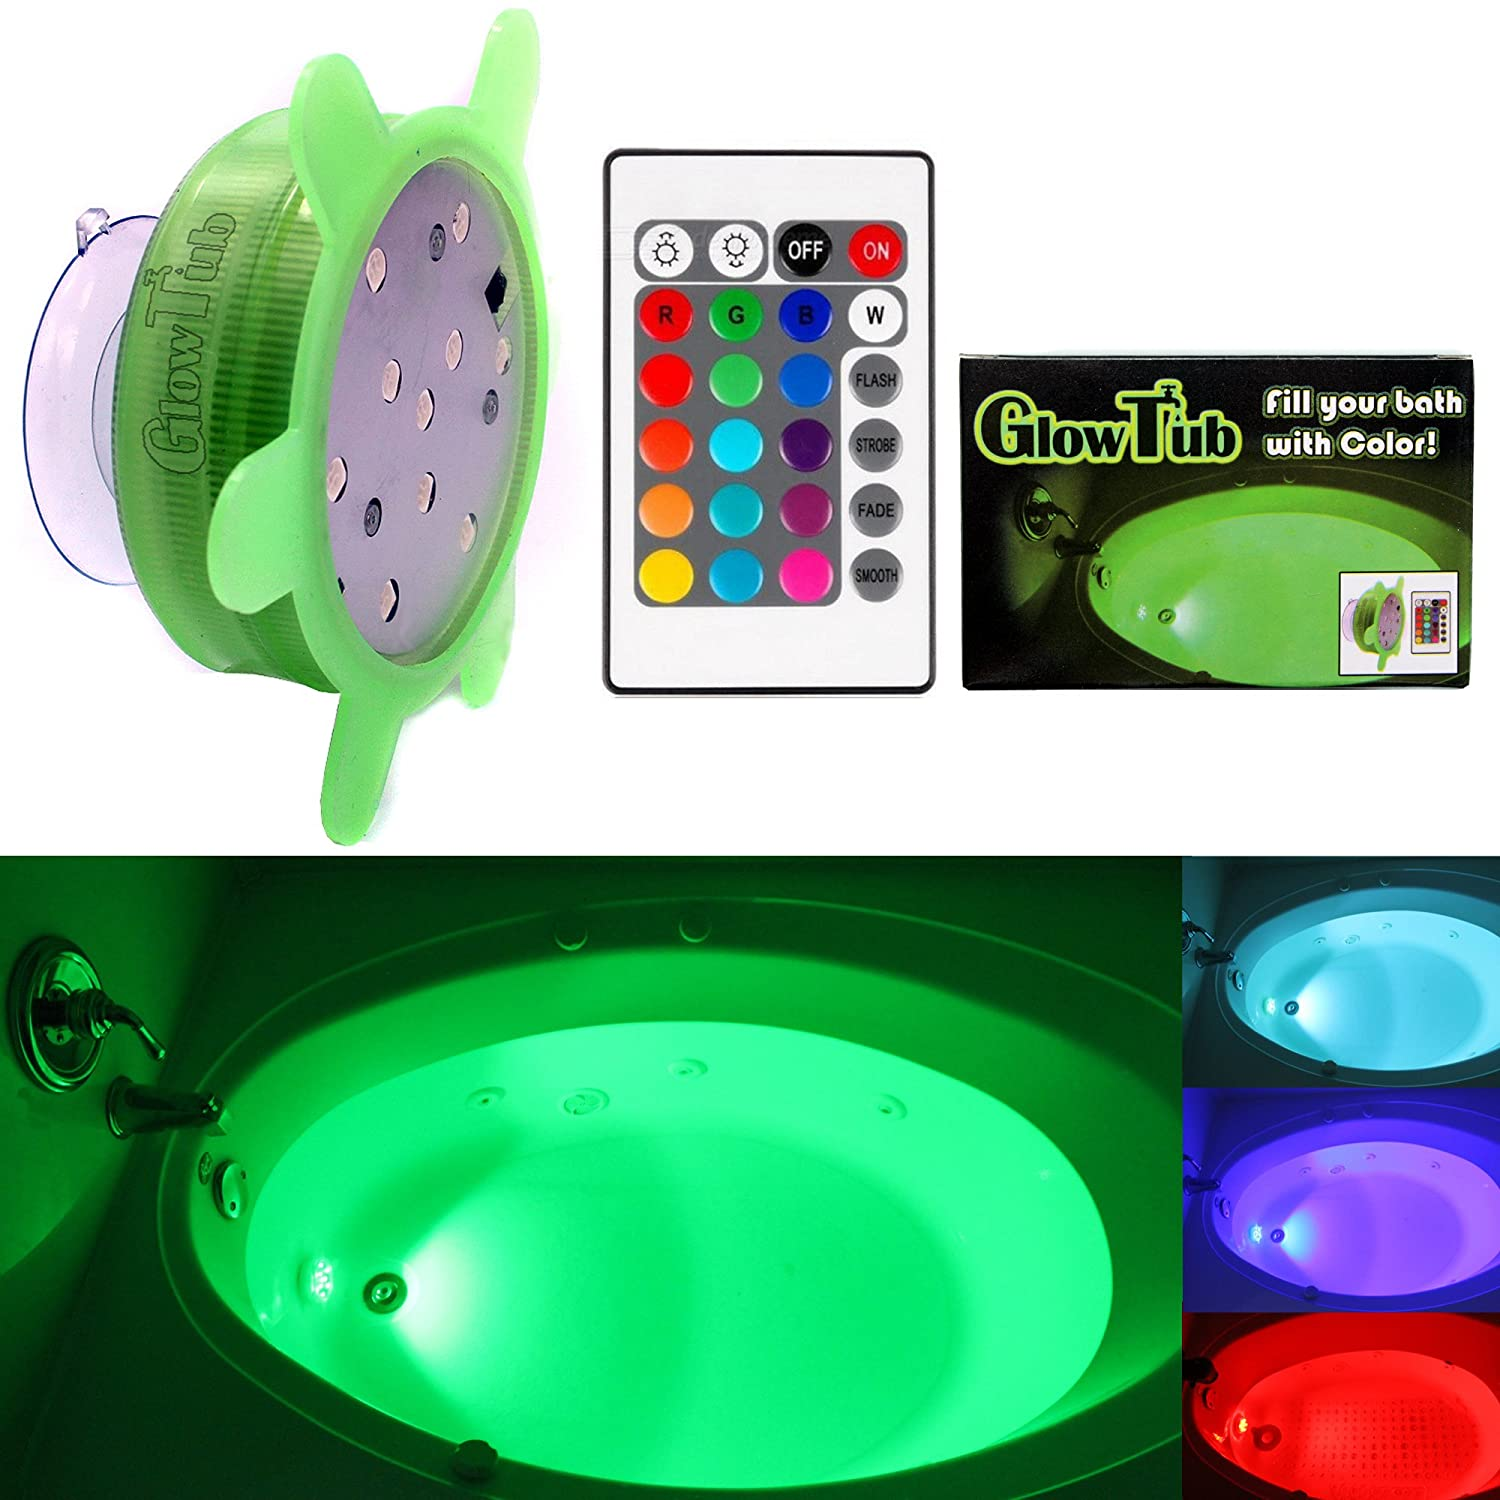 GlowTub Underwater Remote Controlled LED Color Changing Light for bathtub or spa - Battery Operated - V2 Burly Products